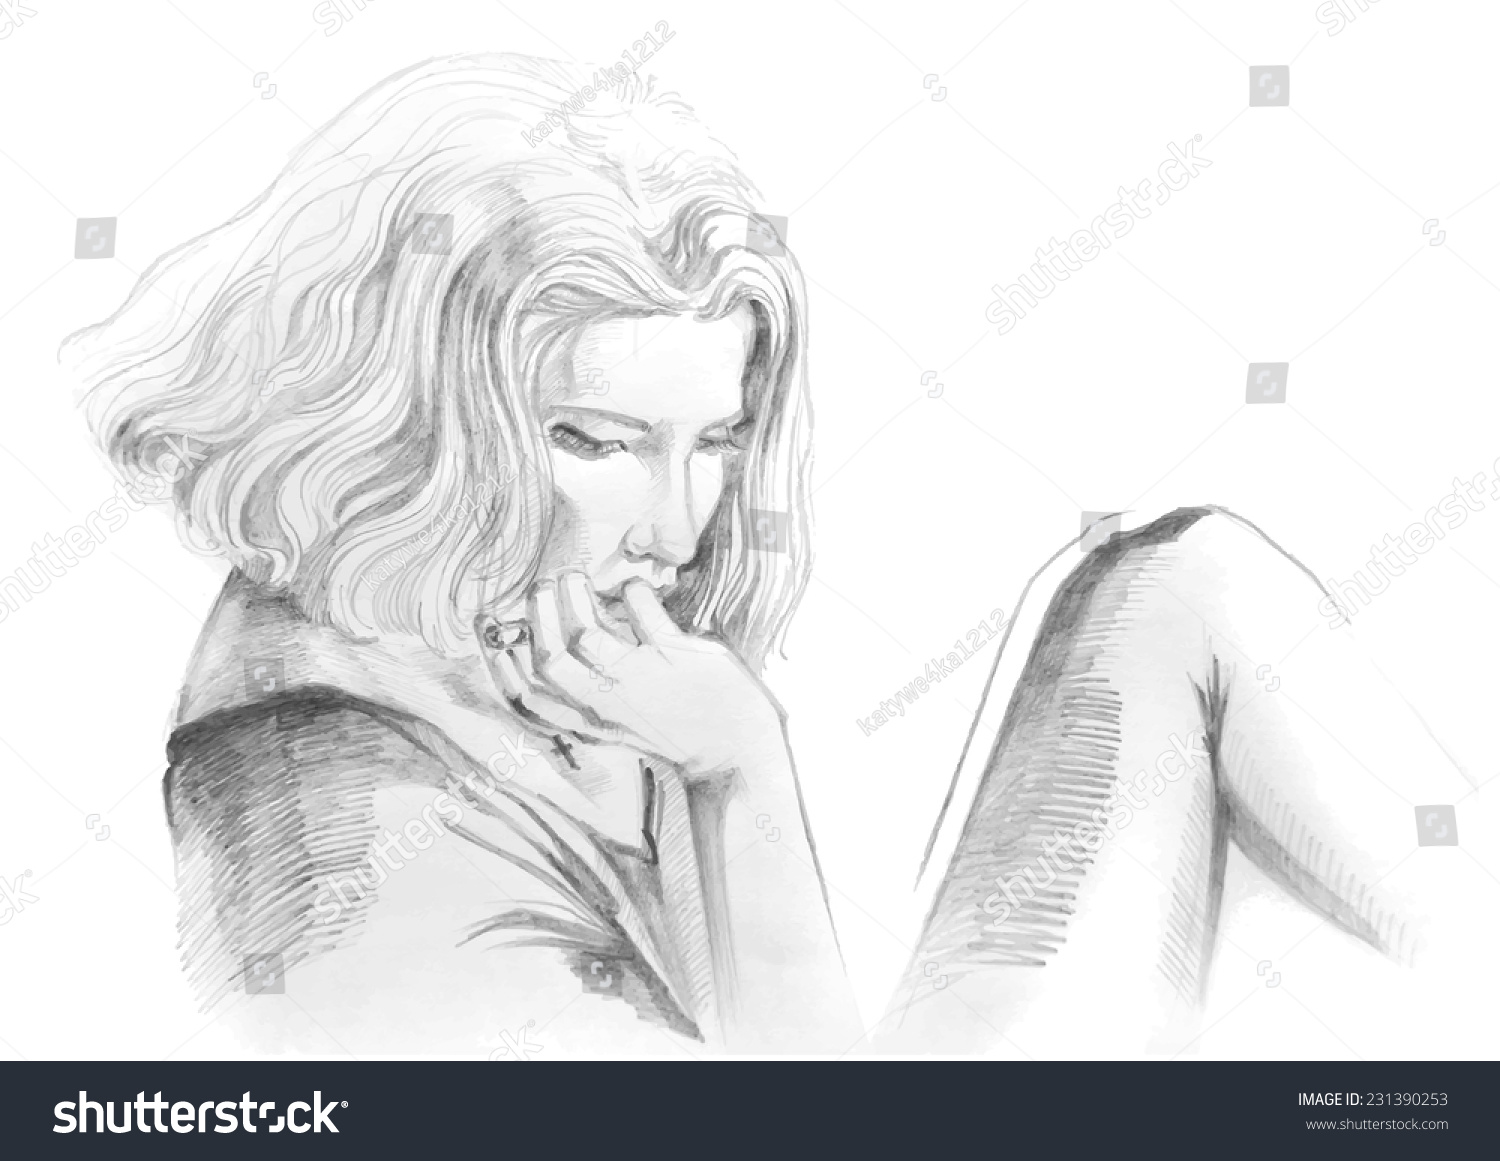 Hand drawn pencil sketch with portrait of a sad smoking girl female portrait